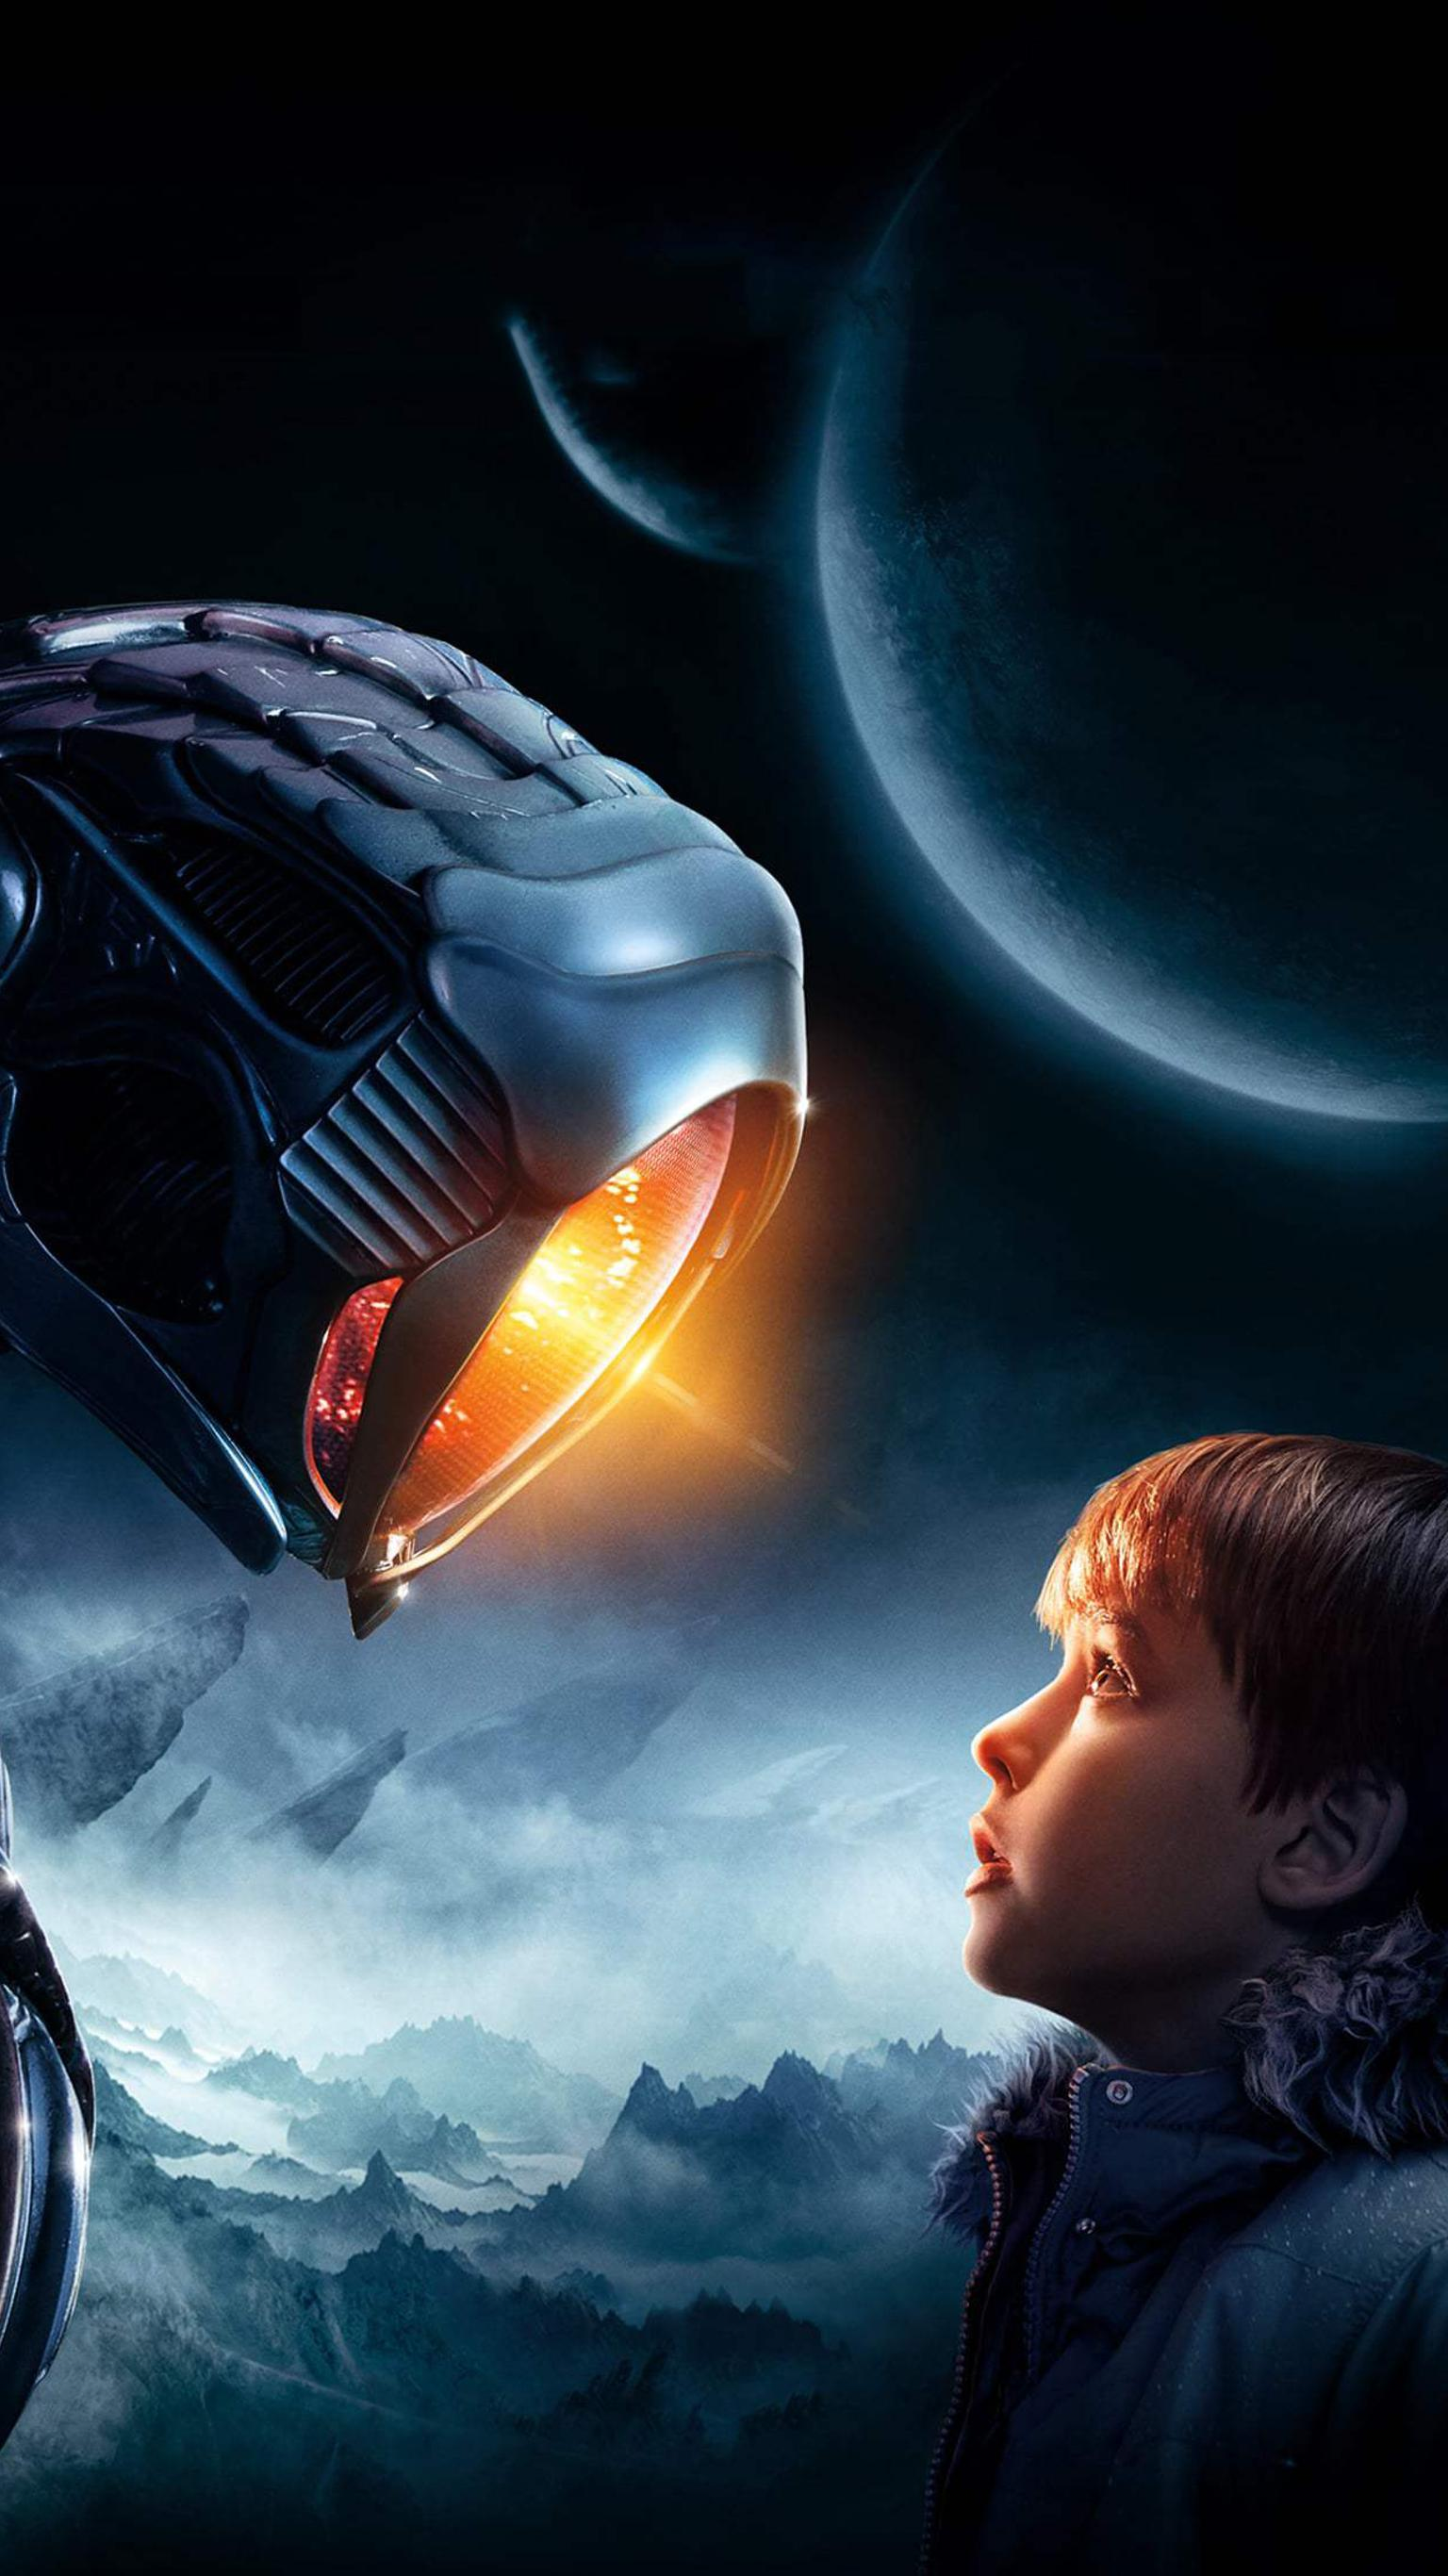 Free Download Lost In Space Phone Wallpaper Moviemania 1536x2732 For Your Desktop Mobile Tablet Explore 20 Lost In Space Wallpapers Lost In Space Wallpaper Lost In Space Wallpapers Lost